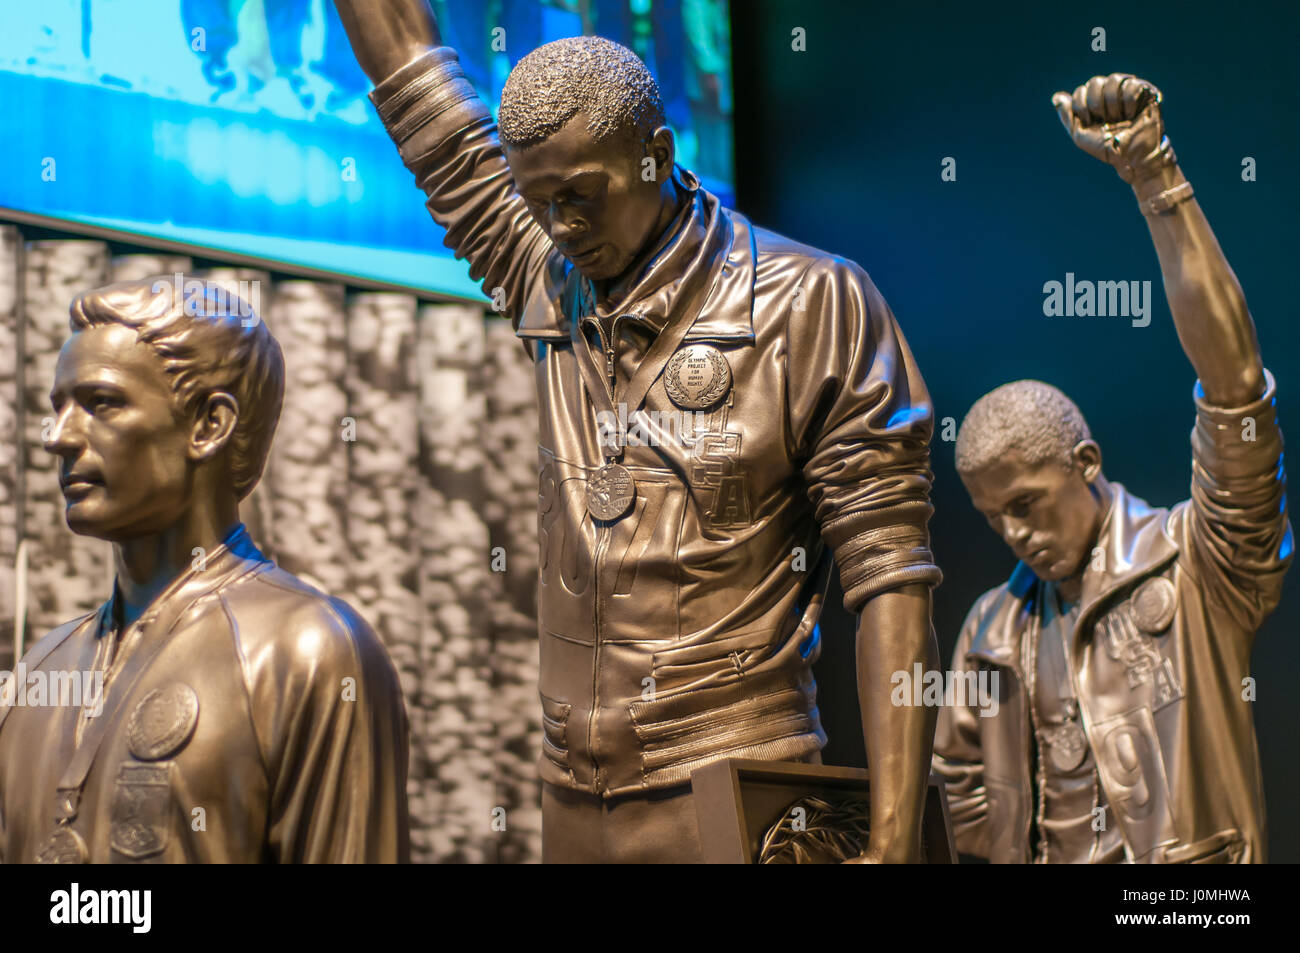 1968 Olympics Black Power salute statue Stock Photo